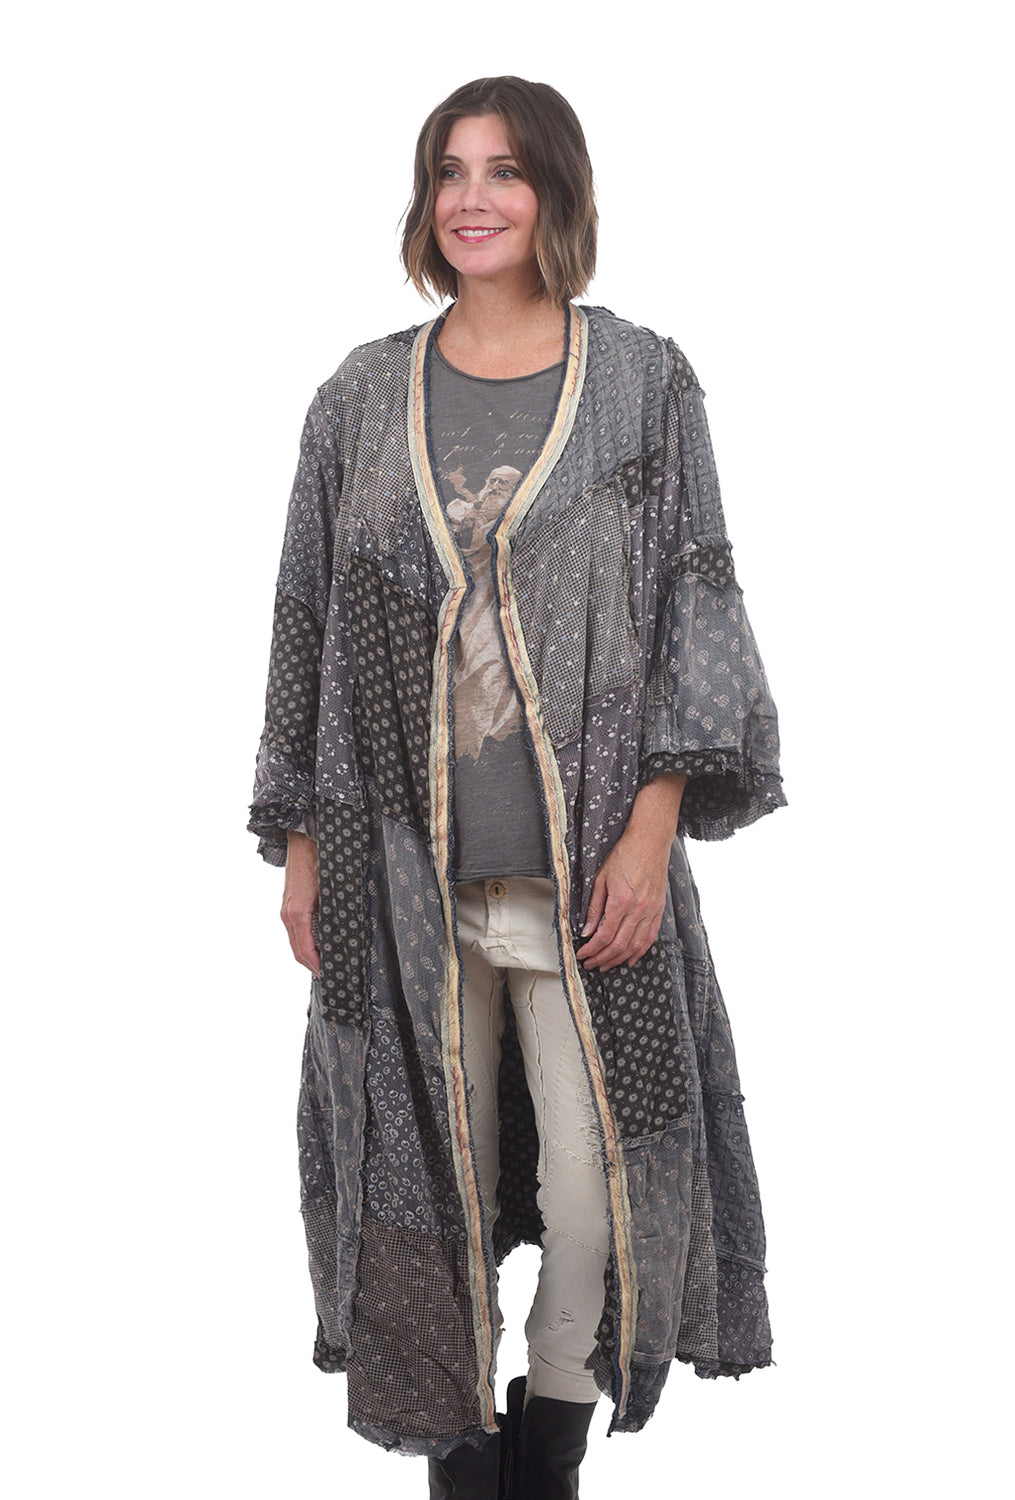 Magnolia Pearl Cotton Emporium Coat, Etty & Molly Print One Size Gray